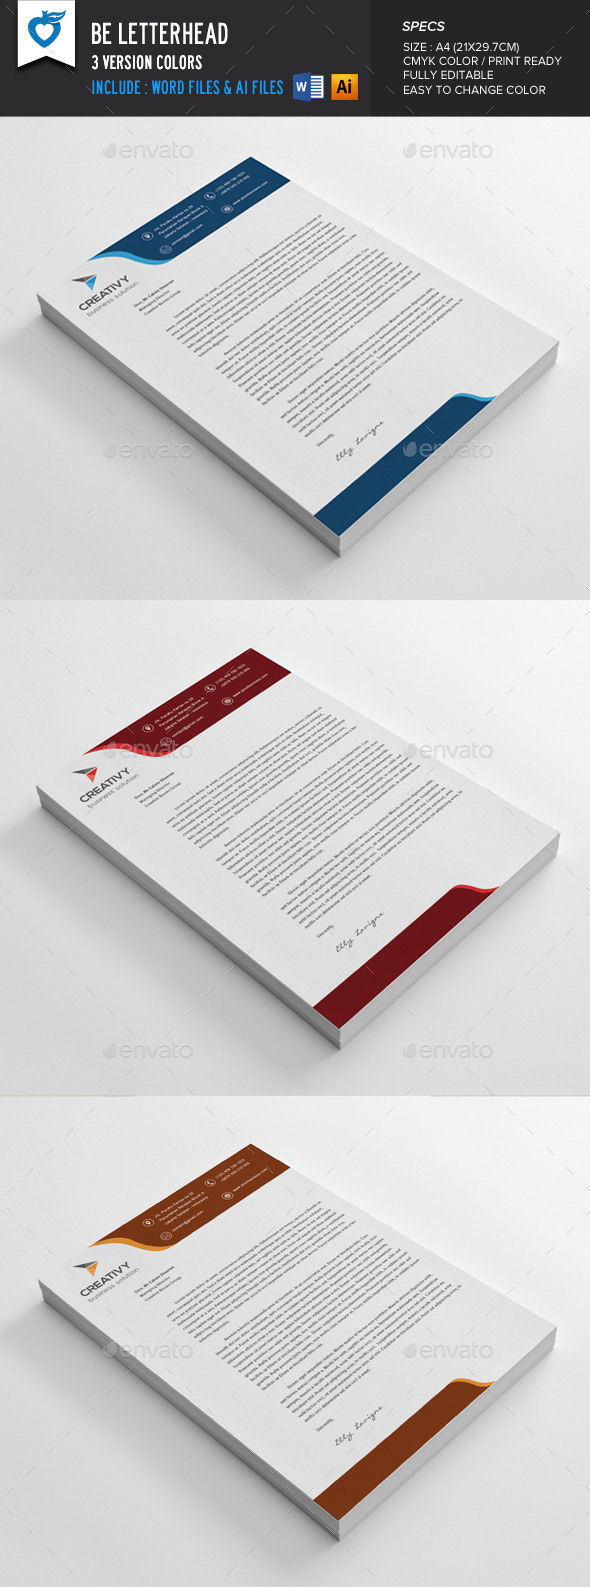 40 free premium letterhead templates in multiple formats be letterhead template spiritdancerdesigns Image collections